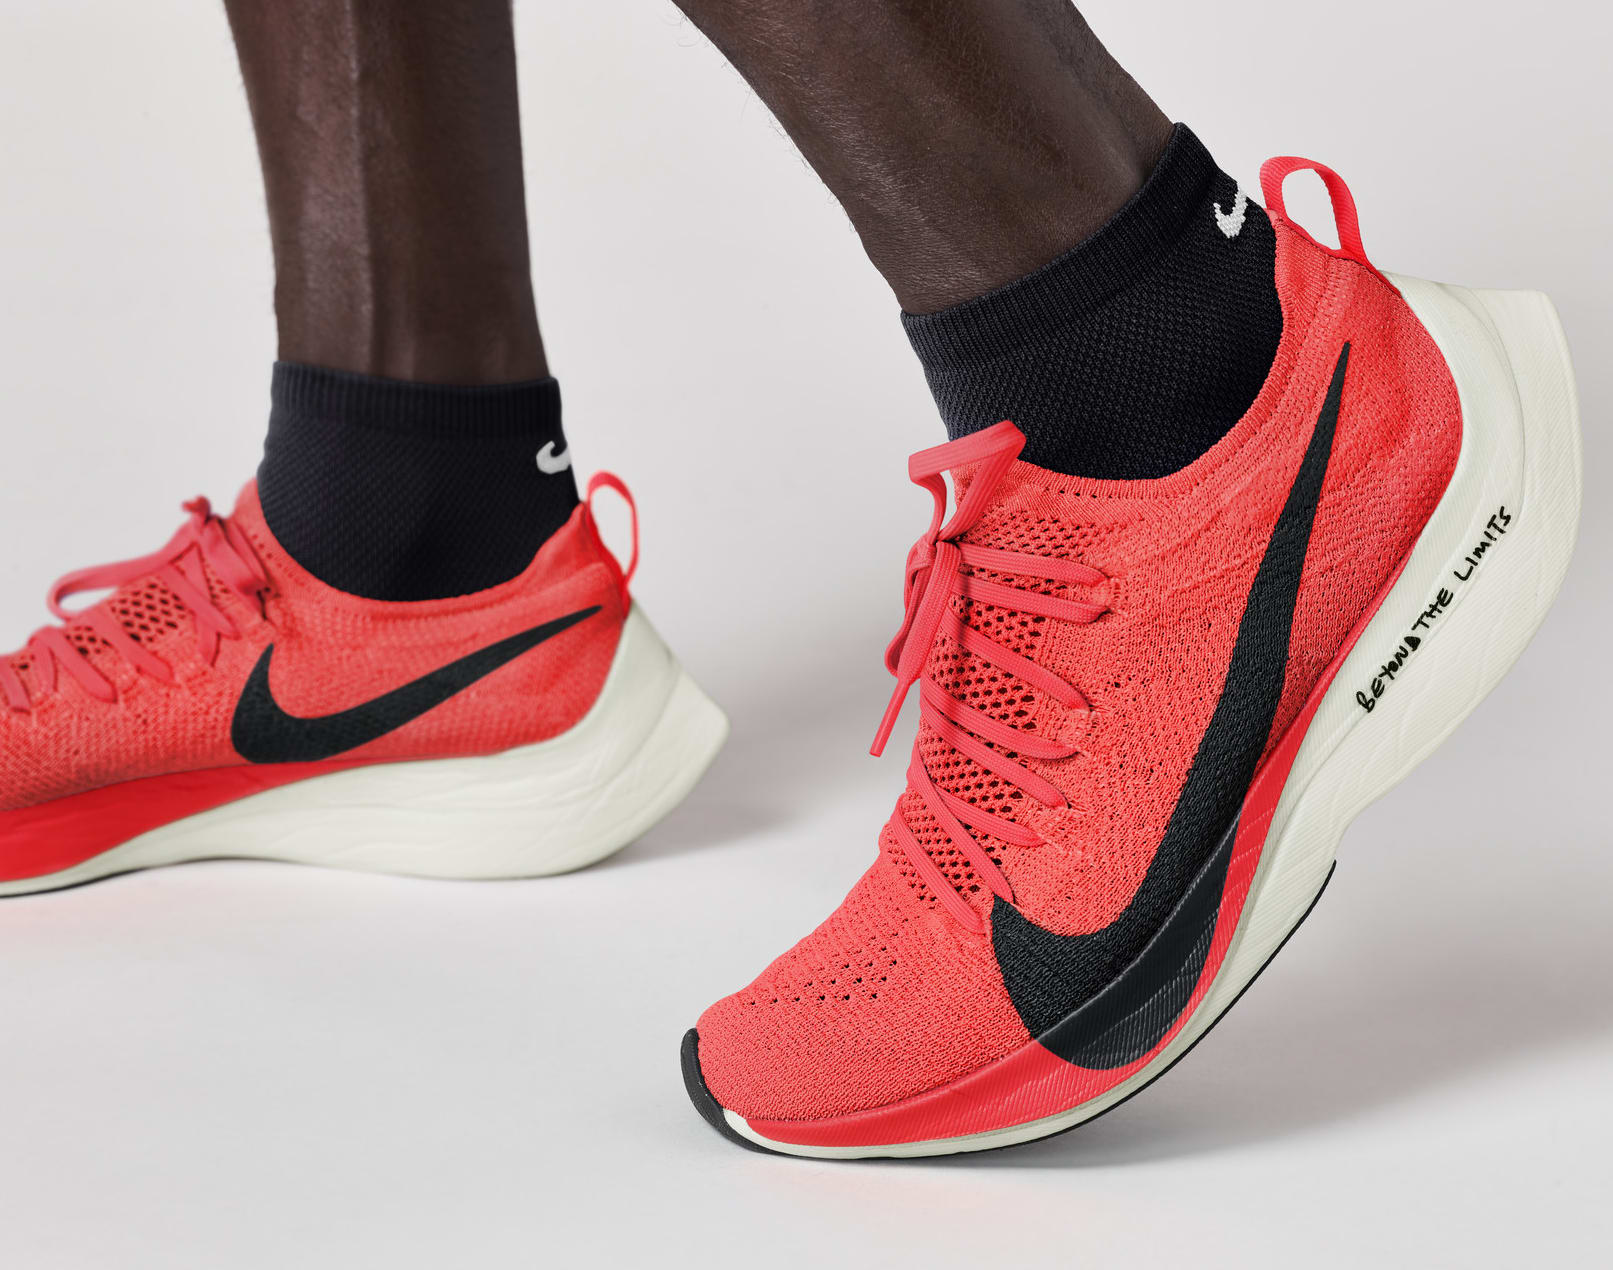 abe5bcad8a7e ... running shoes white black red 152e5 d3e69  canada eliud kipchoge  wearing nike zoom vaporfly elite 7fe1d 658b7